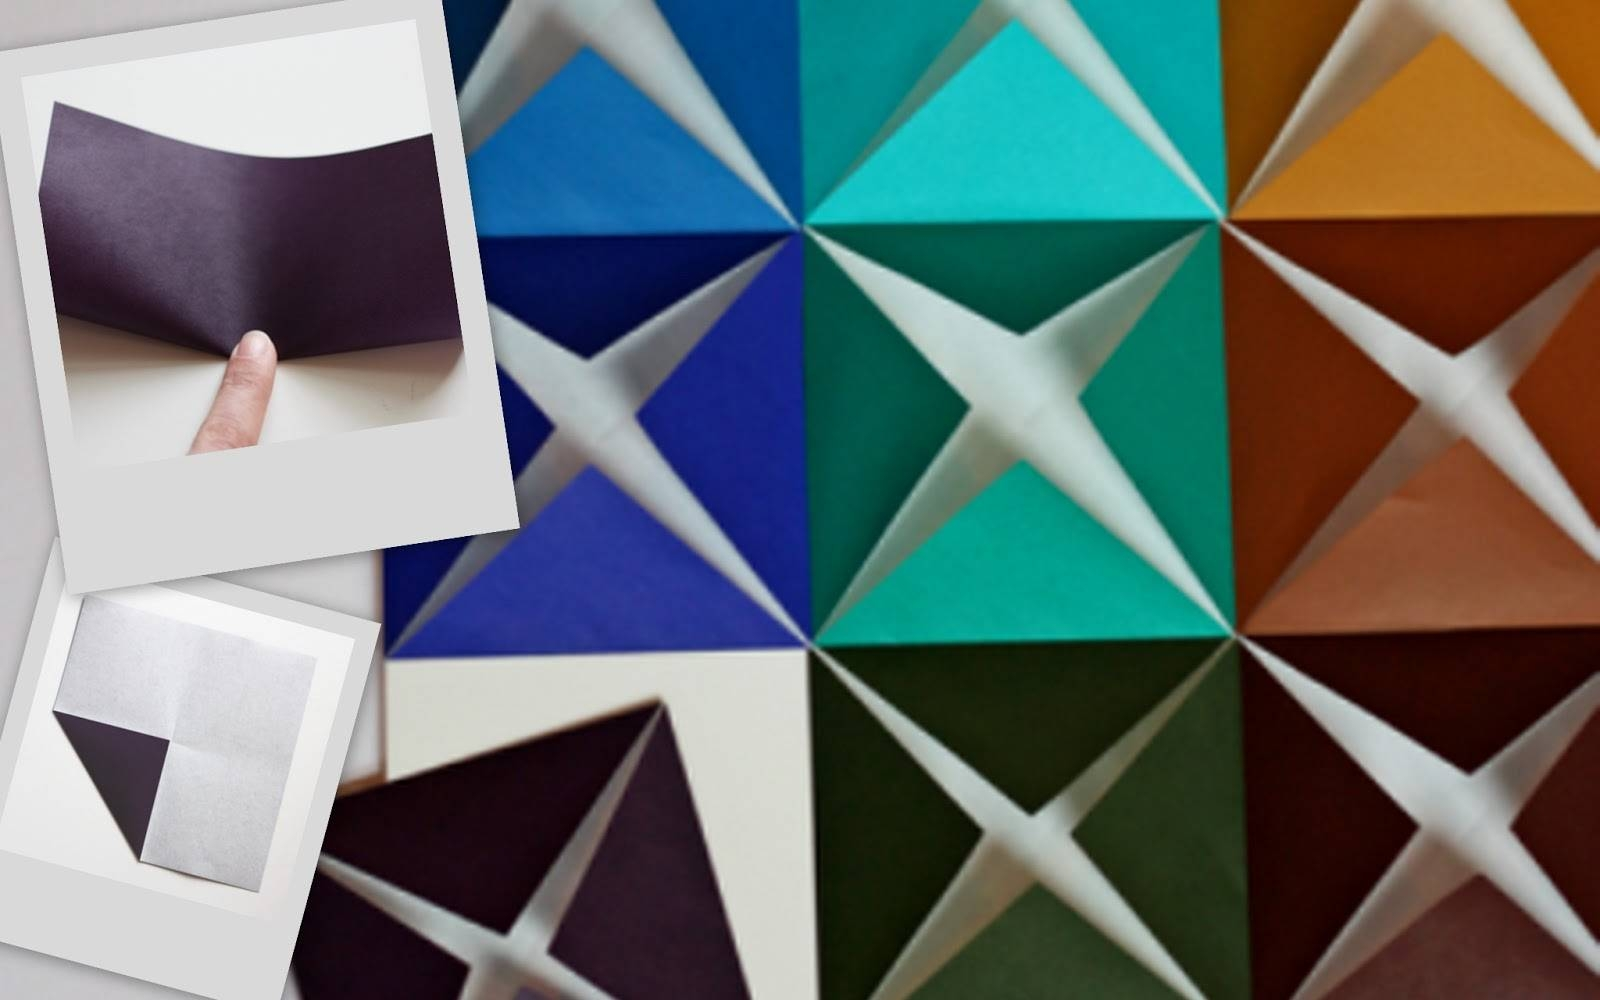 Nine Red: How To: 3 D Paper Wall Art Intended For 2018 3D Triangle Wall Art (View 15 of 20)